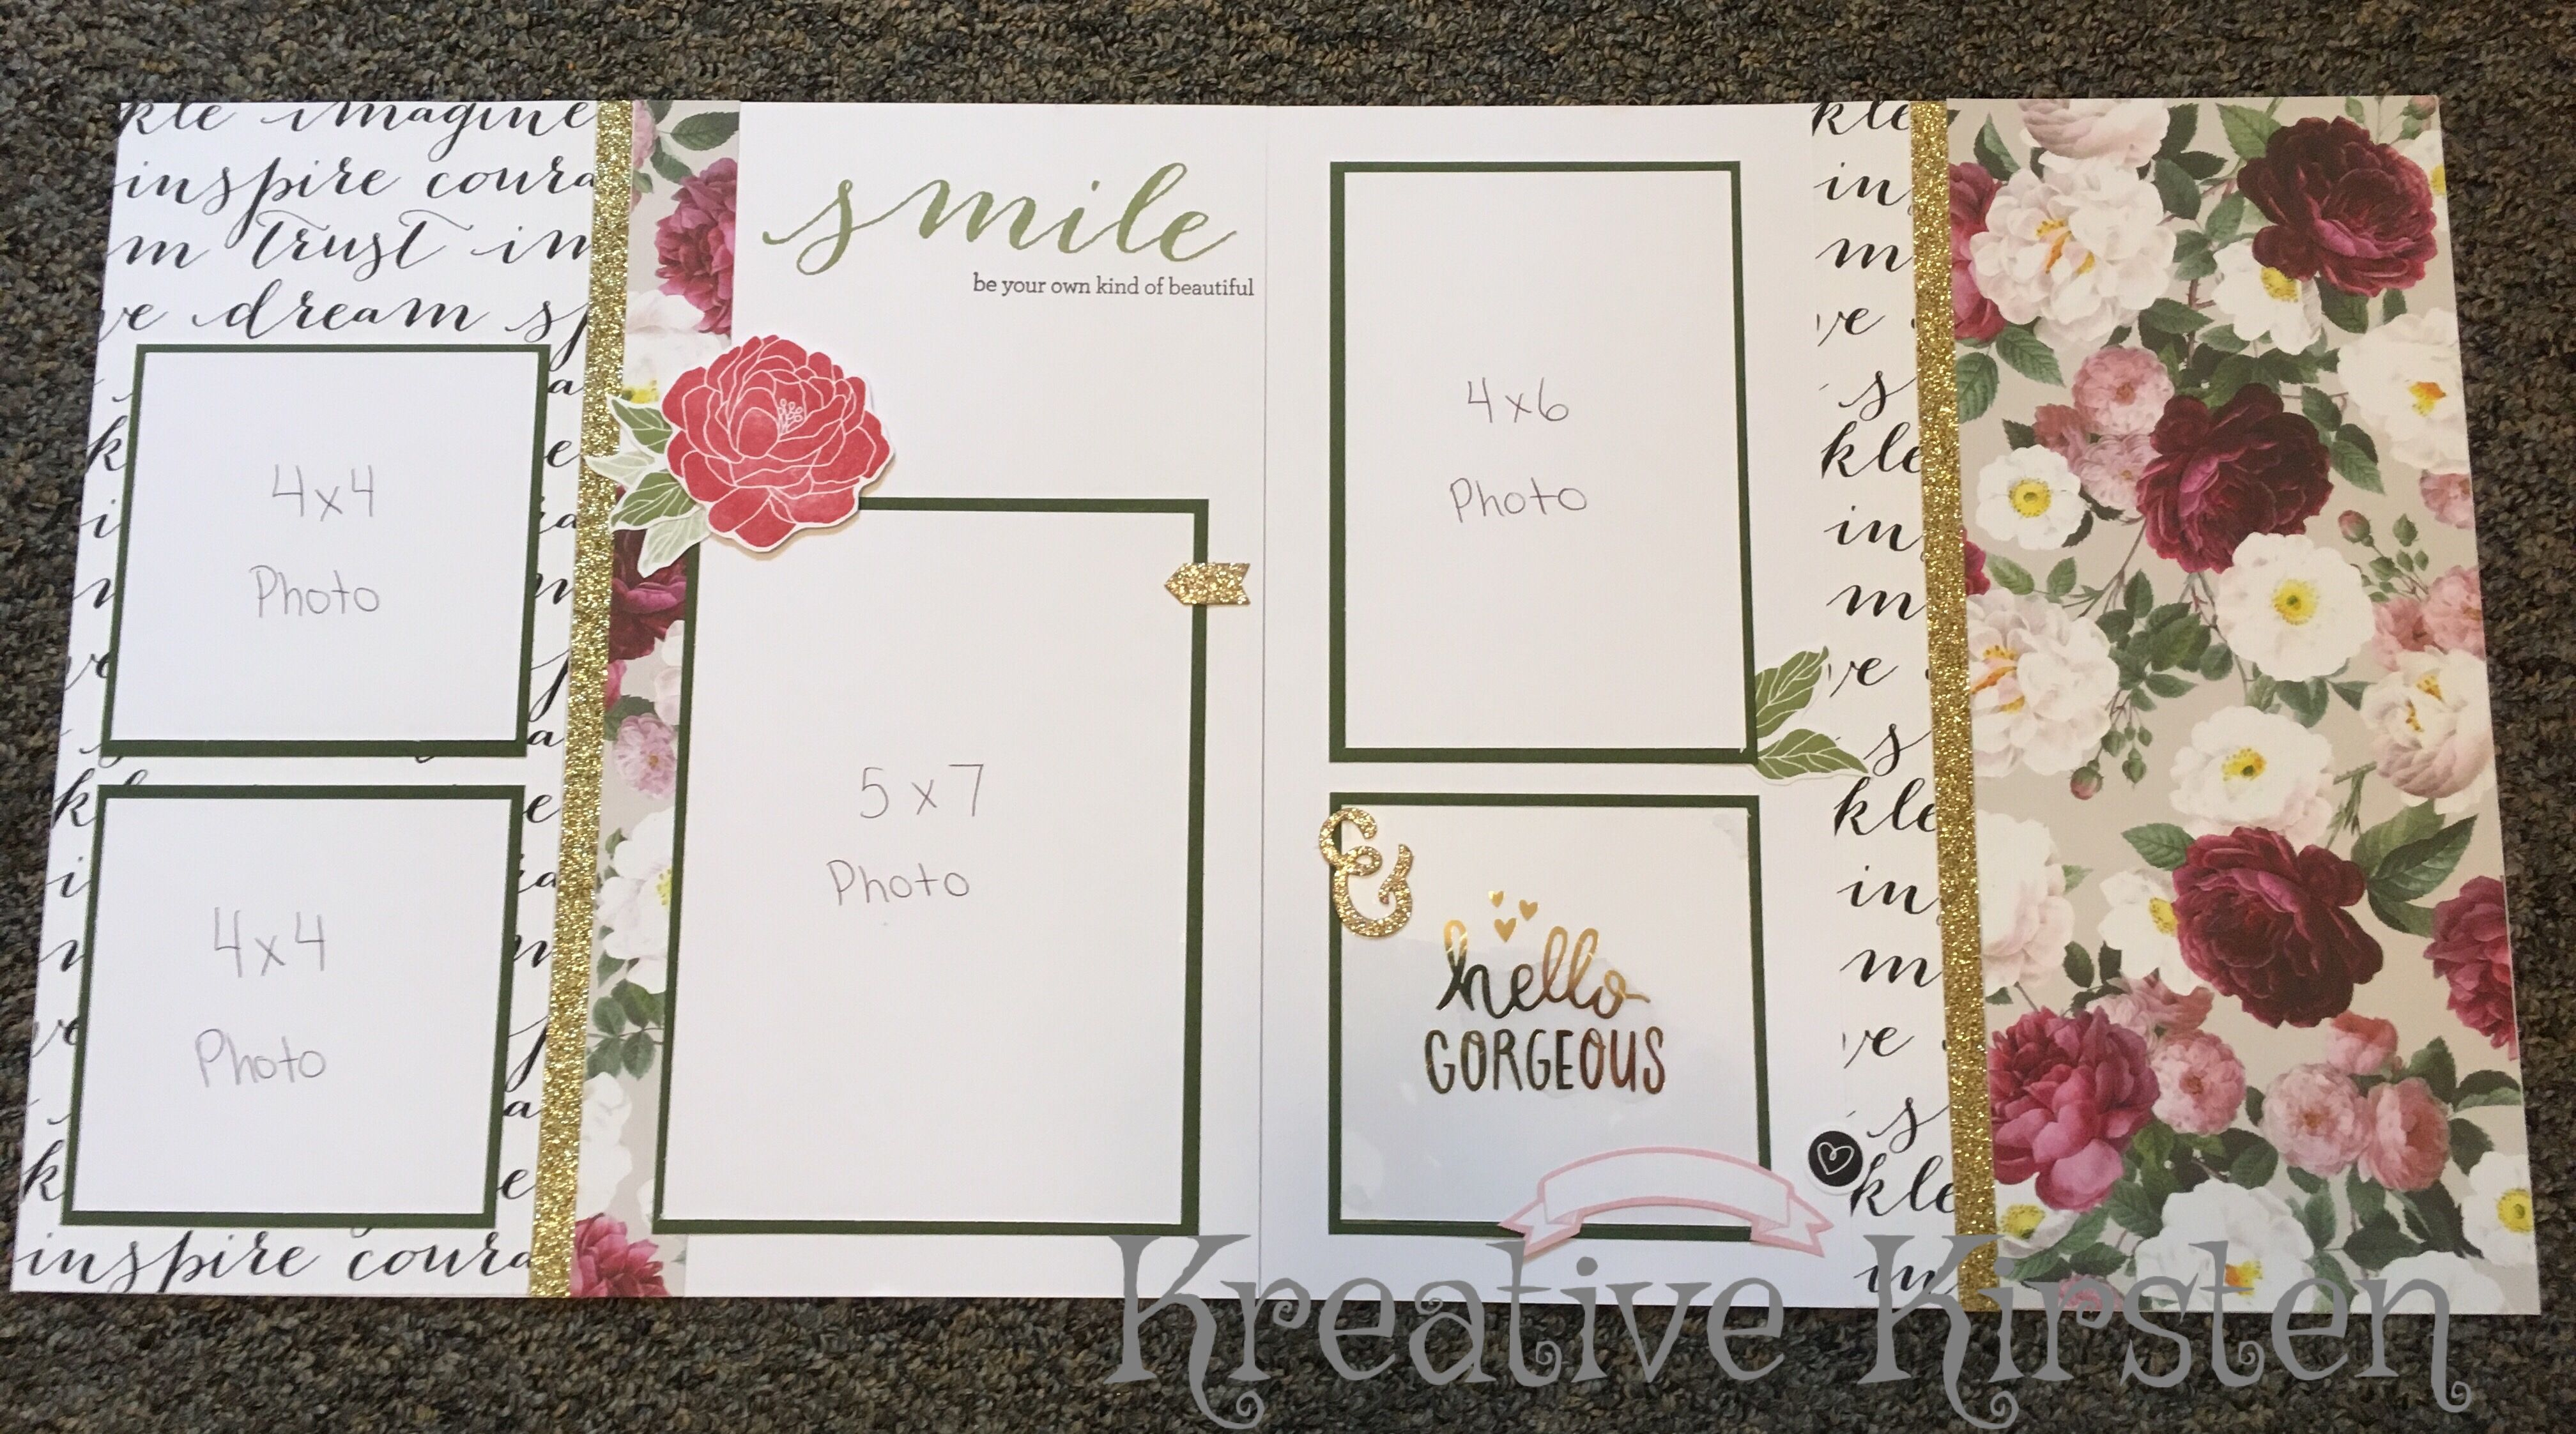 How to scrapbook a wedding invitation - Cards